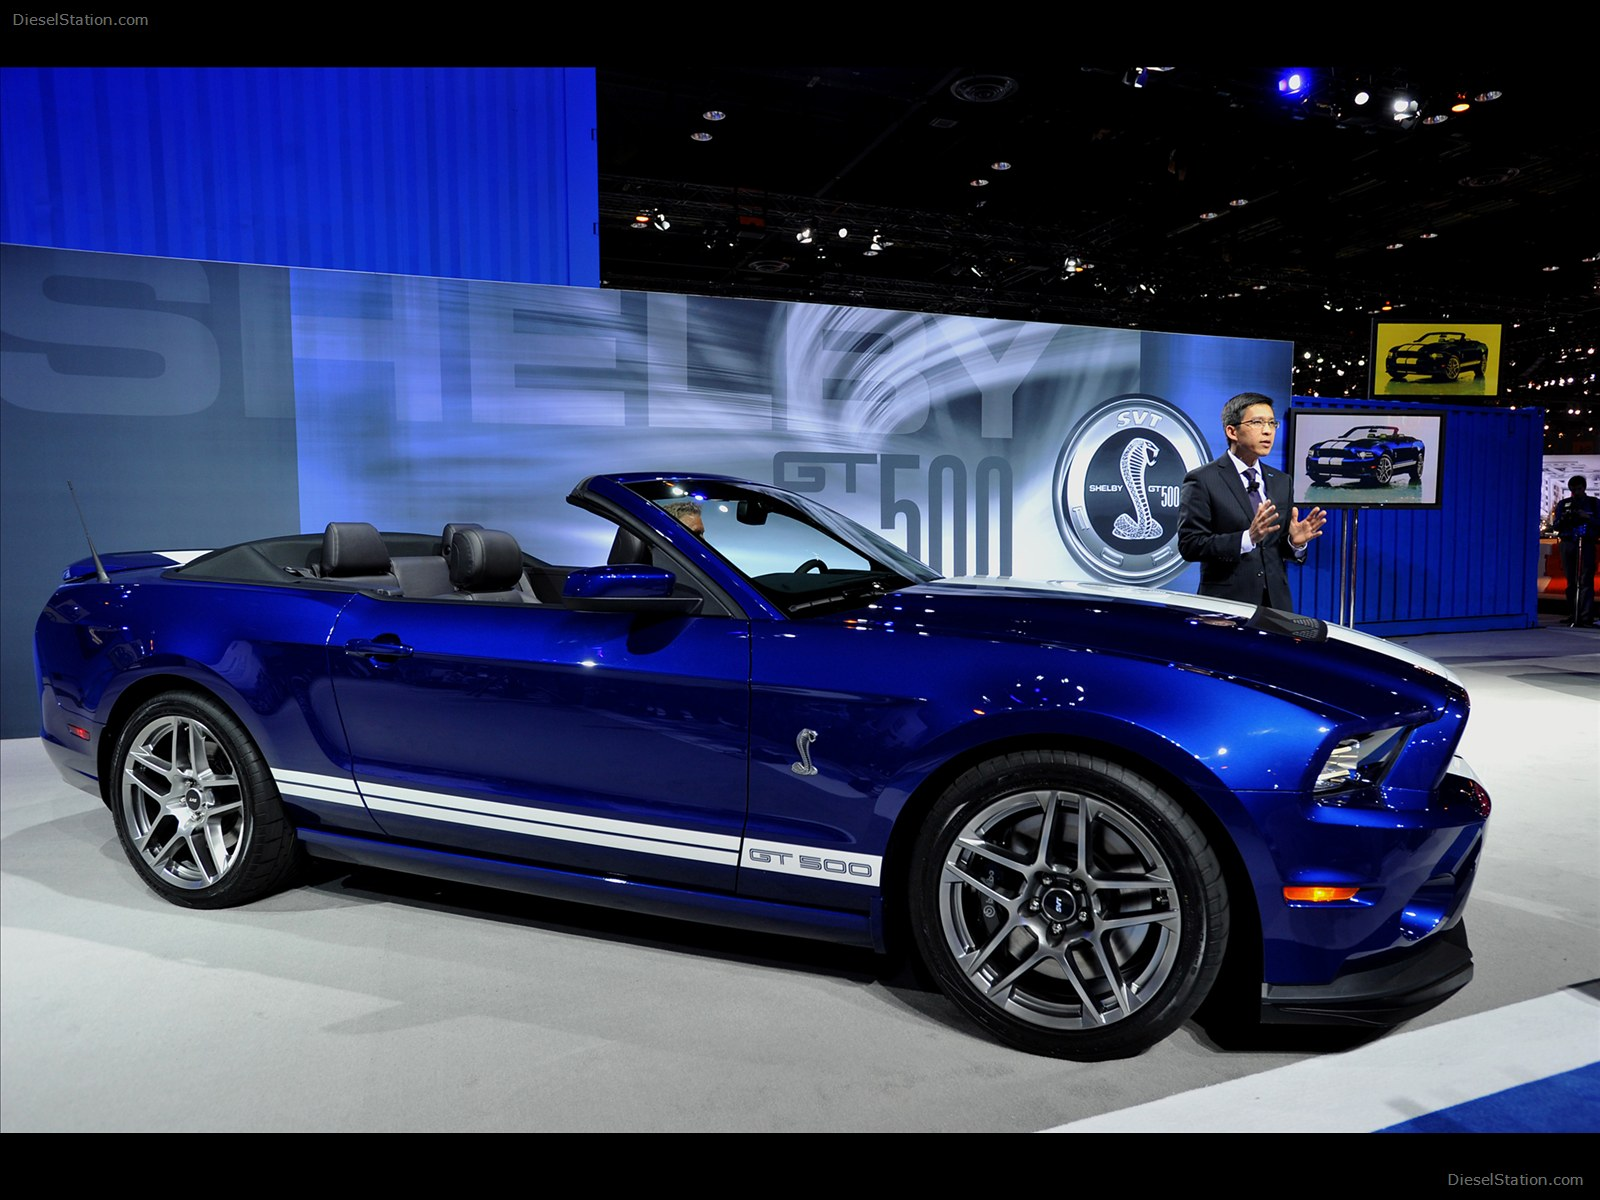 2013 Ford Mustang Shelby GT500 photo - 2